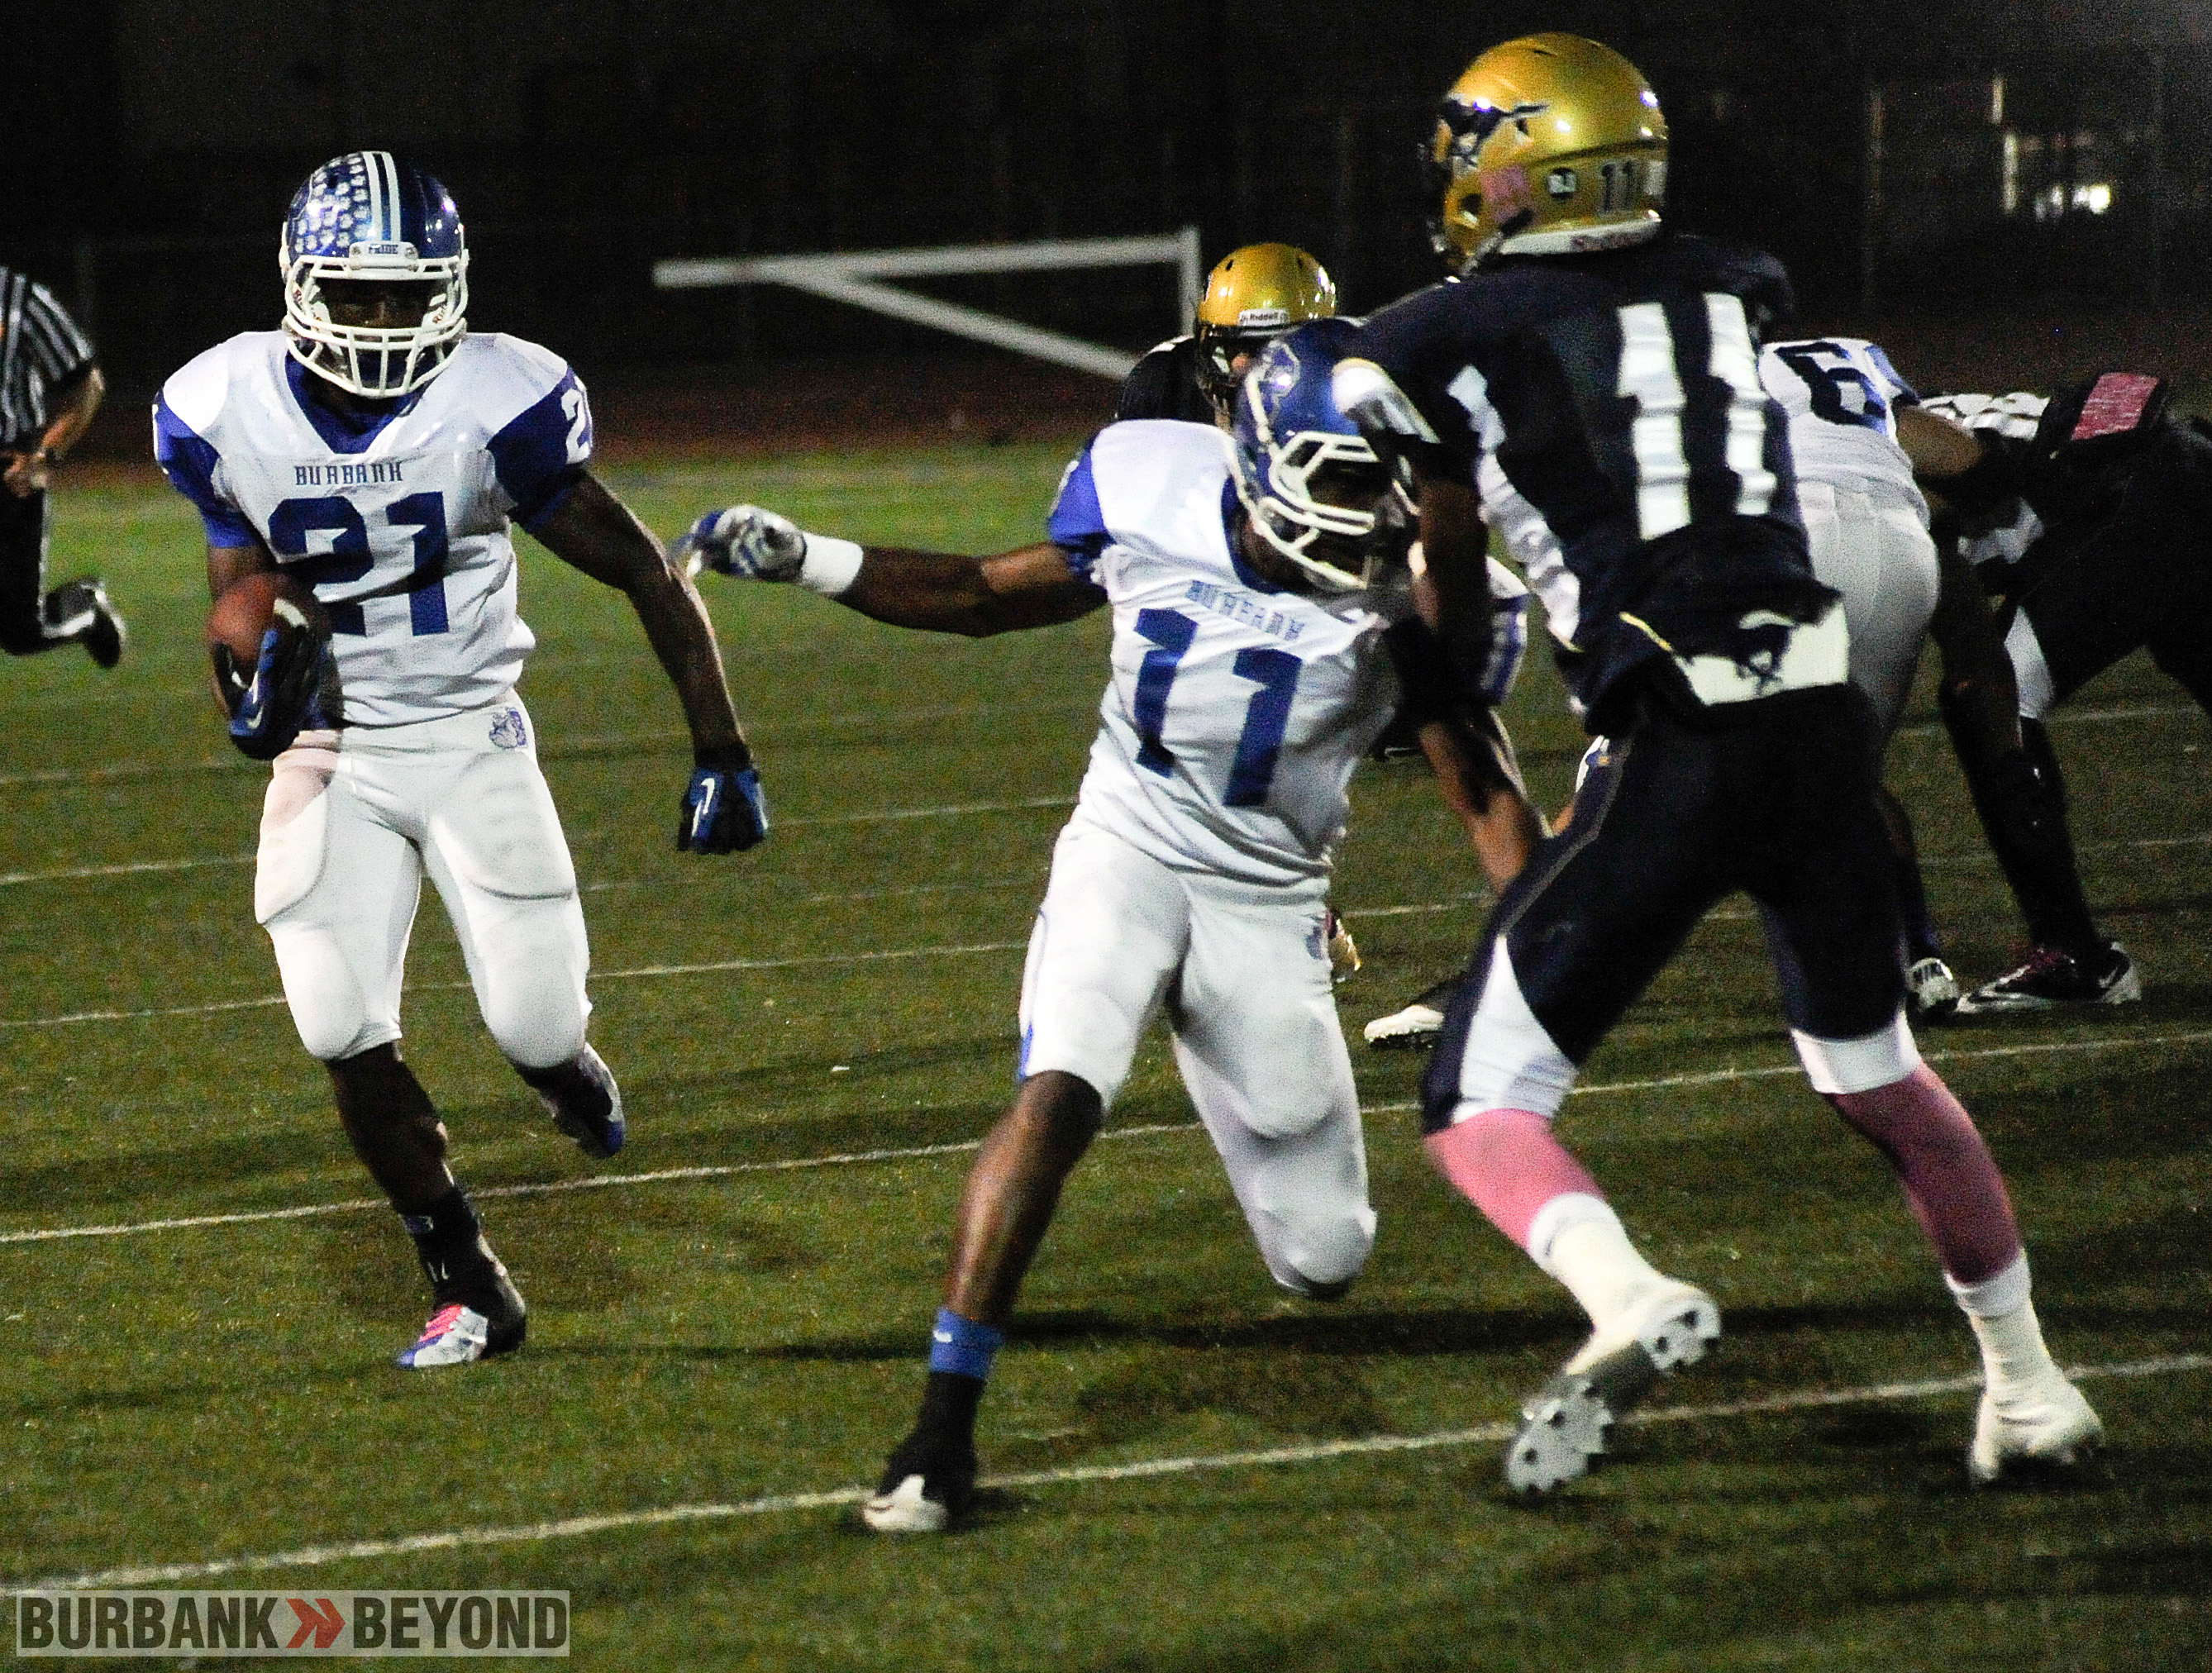 James Williams led Burbank with 112 yards rushing (Photo by Craig Sherwood)